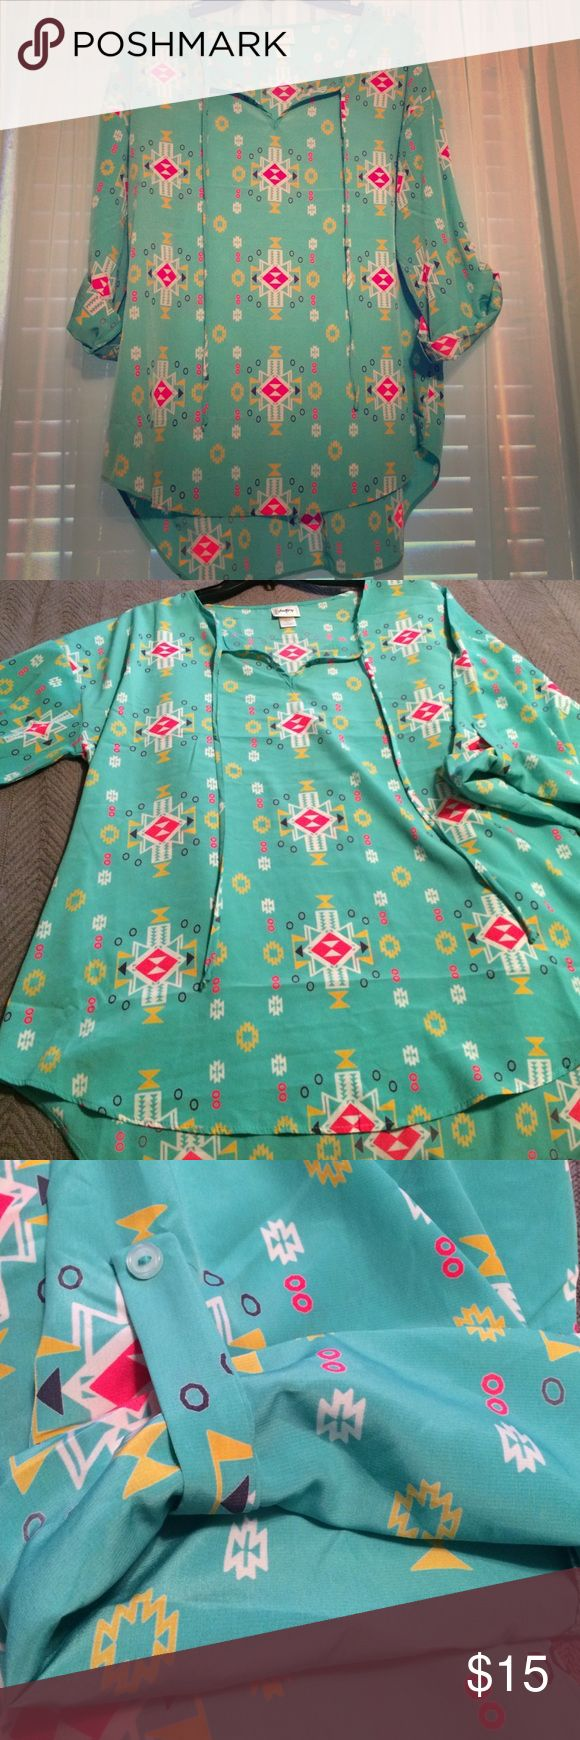 The Buckle Daytrip Aztec Blouse. This Aztec Blouse is super cute! It's longer in the back. Colors are Turquoise, Hot Pink, White, Yellow and Purple. Only worn a handful of times! In great condition! Daytrip Tops Blouses